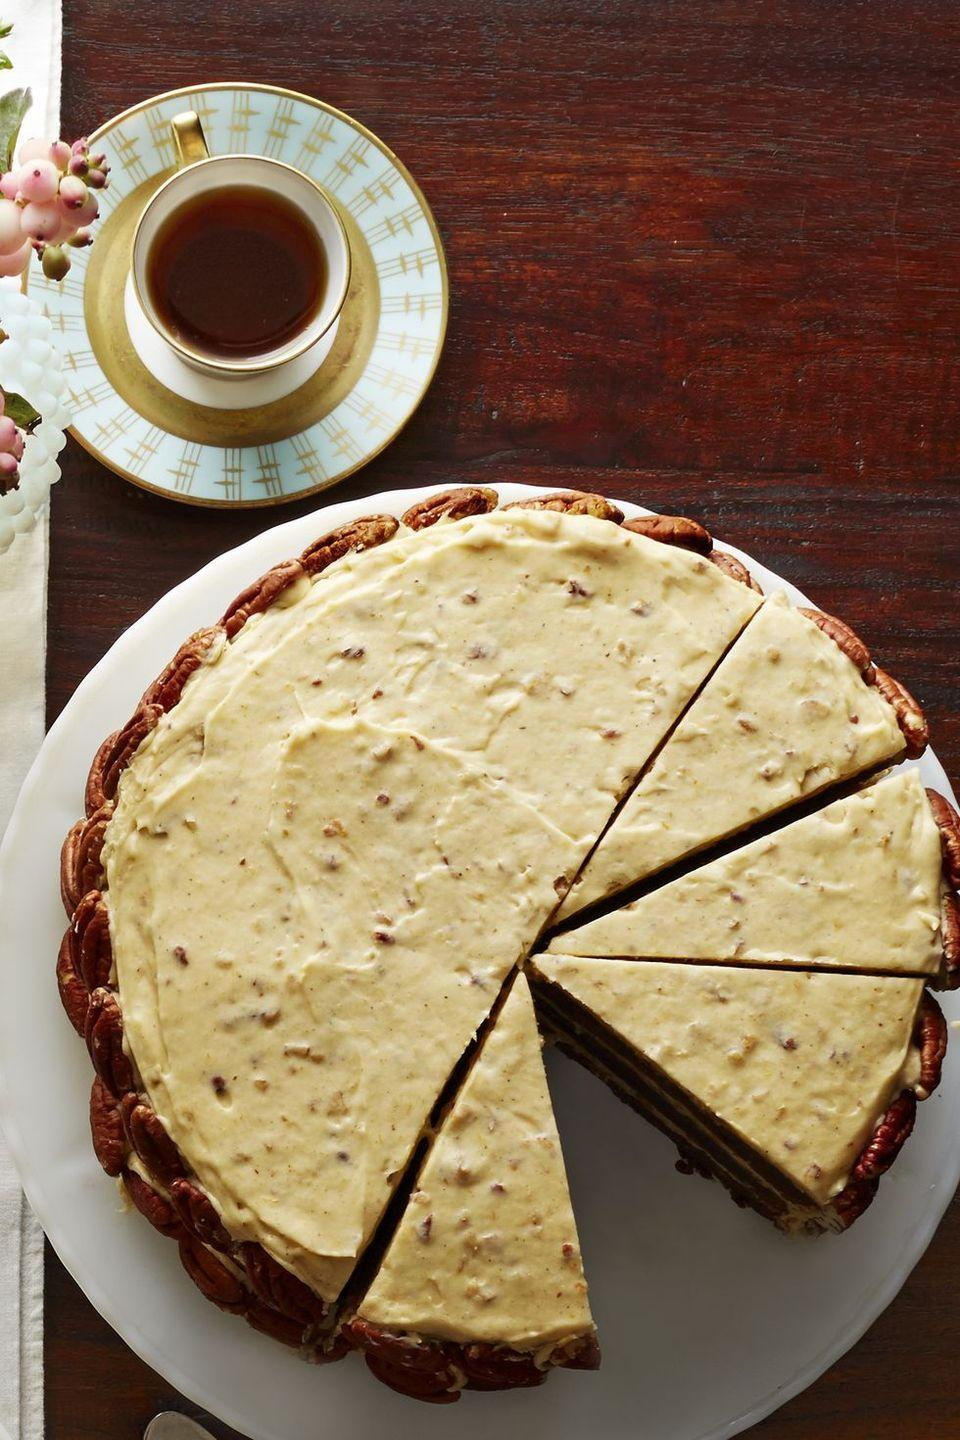 "<p>This cake's got it all for fall: Gooey chocolate, creamy pumpkin frosting, and crunchy pecans for texture and the prettiest decoration.</p><p><em><a href=""https://www.goodhousekeeping.com/food-recipes/a16154/chocolate-brown-sugar-butter-cake-spiced-pumpkin-frosting-recipe-clx1114/"" rel=""nofollow noopener"" target=""_blank"" data-ylk=""slk:Get the recipe for Chocolate Brown Sugar Butter Cake with Spiced Pumpkin Frosting »"" class=""link rapid-noclick-resp"">Get the recipe for Chocolate Brown Sugar Butter Cake with Spiced Pumpkin Frosting »</a></em></p><p><strong>RELATED: </strong><a href=""https://www.goodhousekeeping.com/cooking-tools/g26801332/best-cake-decorating-tools/"" rel=""nofollow noopener"" target=""_blank"" data-ylk=""slk:8 Best Cake Decorating Tools and Kits, According to Kitchen Experts"" class=""link rapid-noclick-resp"">8 Best Cake Decorating Tools and Kits, According to Kitchen Experts</a><br></p>"